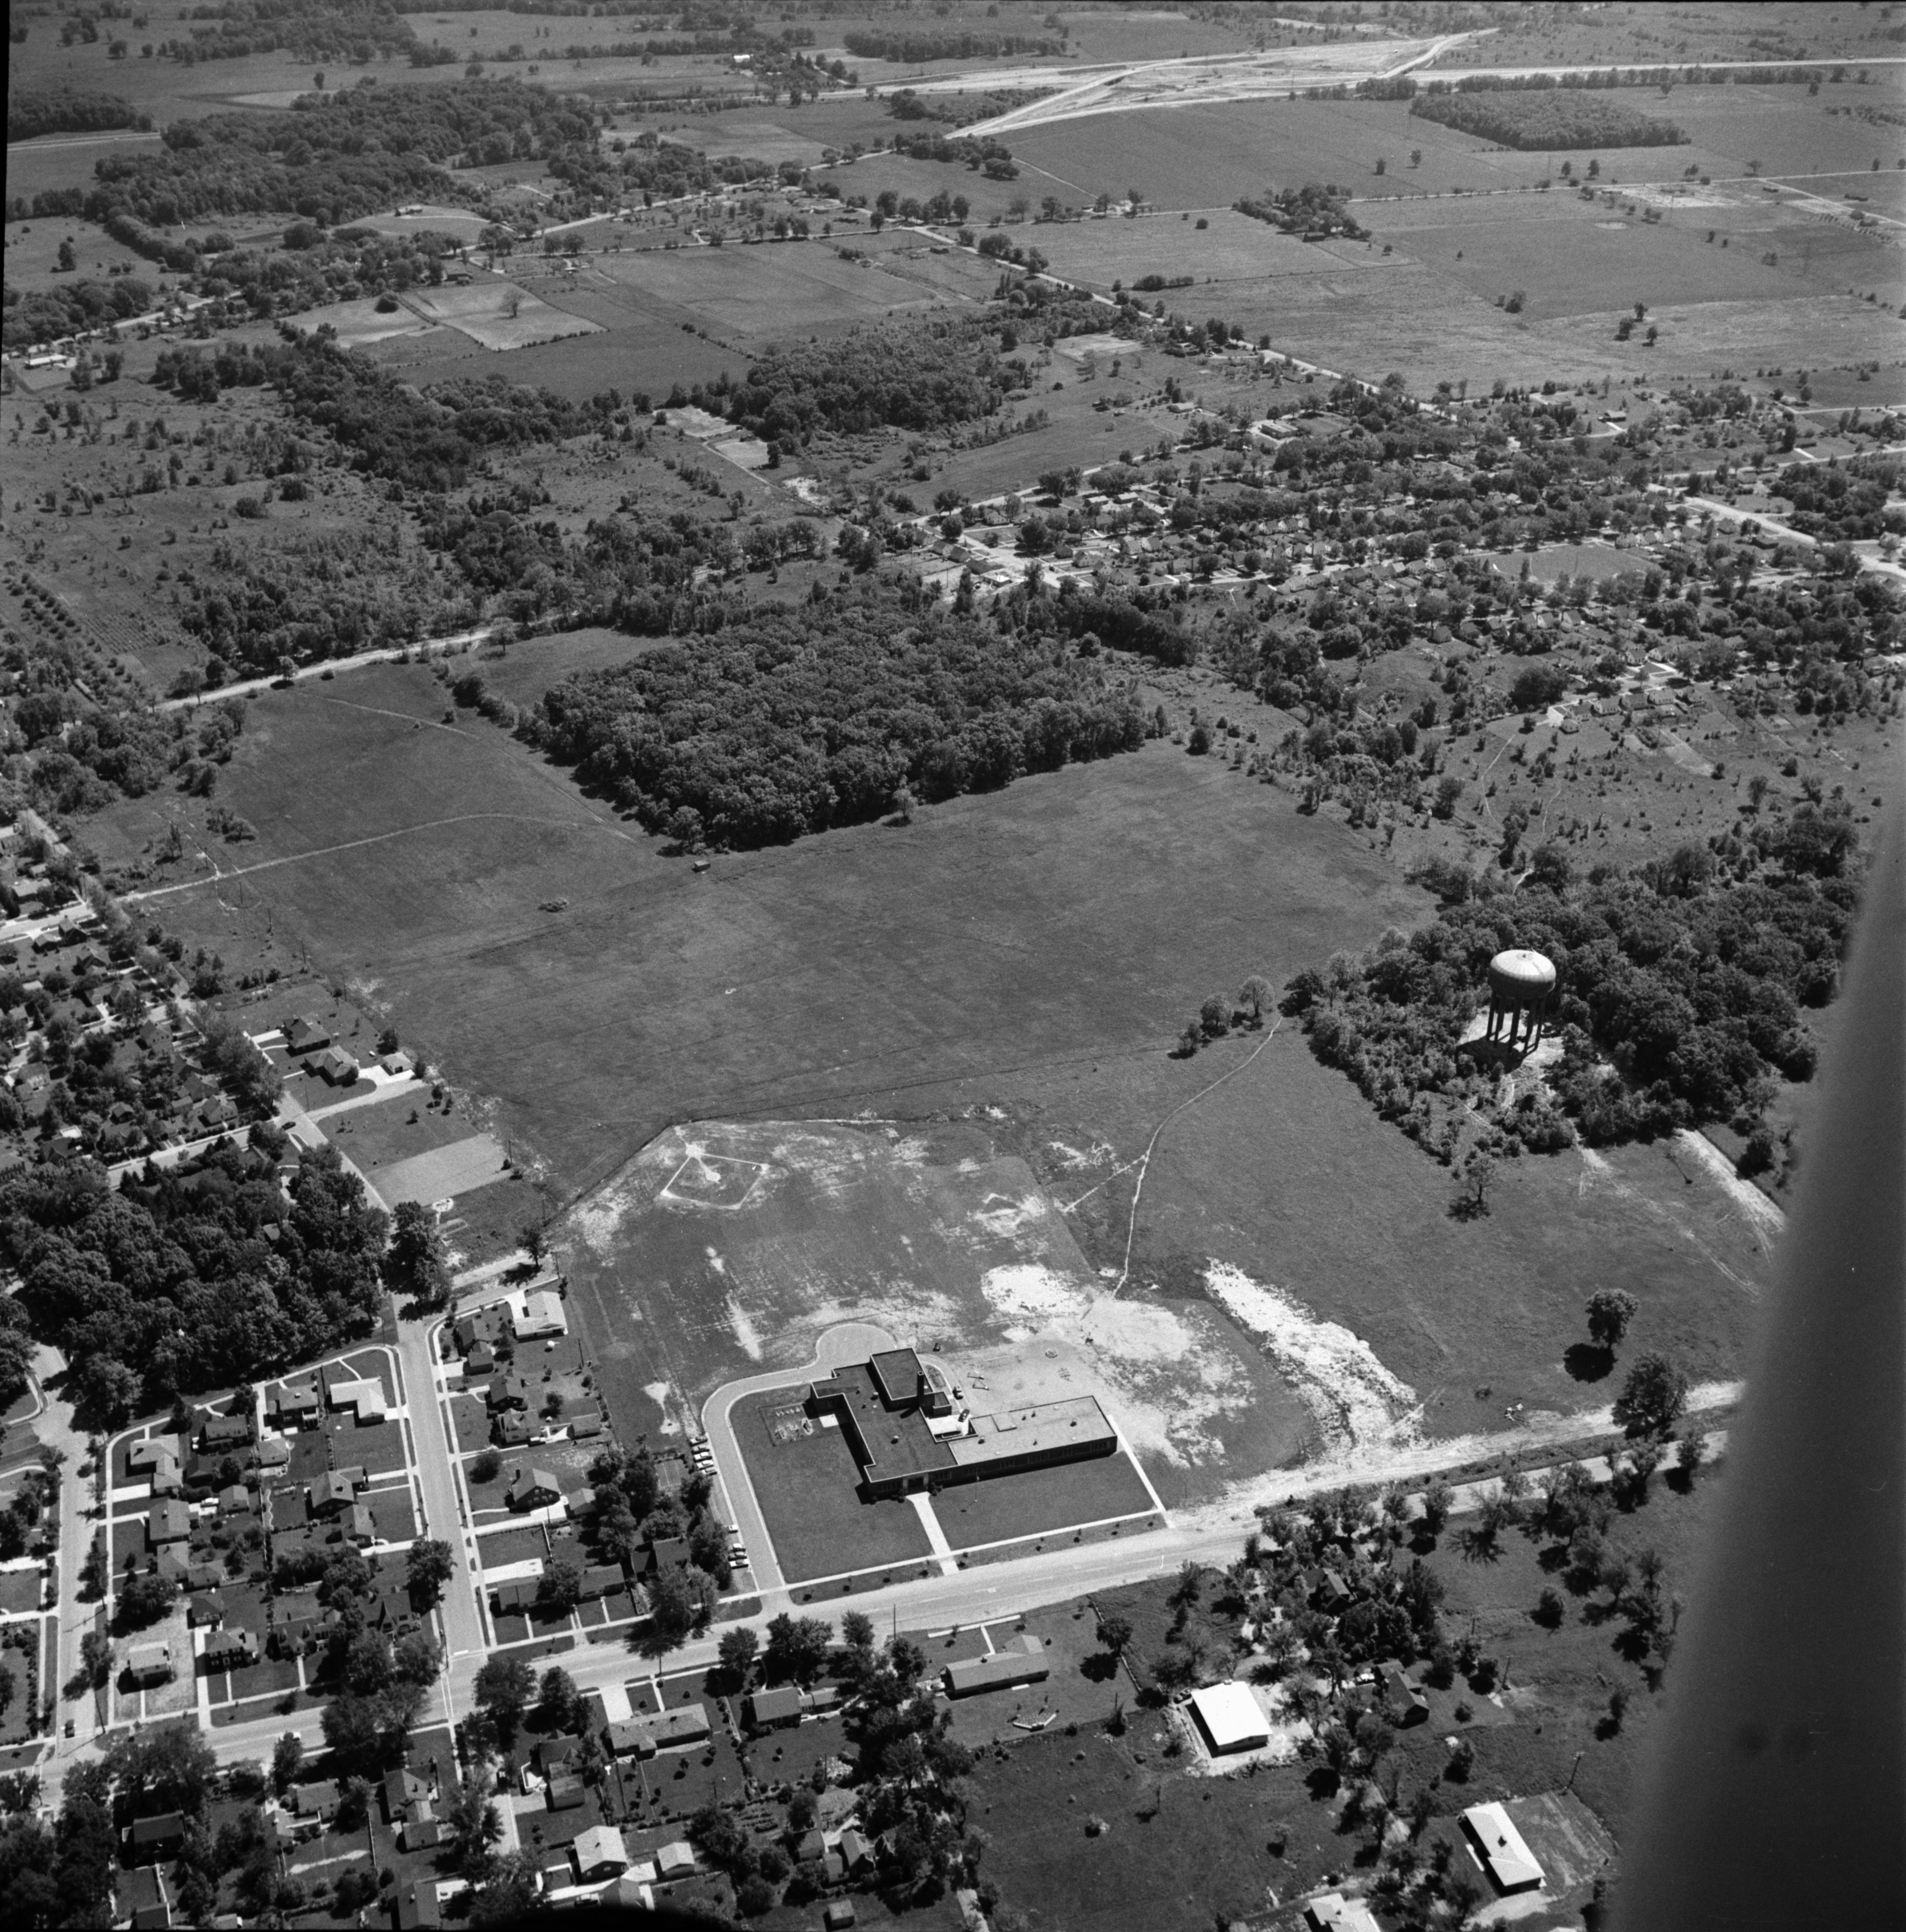 Aerial Photograph of Estabrook School Area, Ypsilanti, July 1957 image